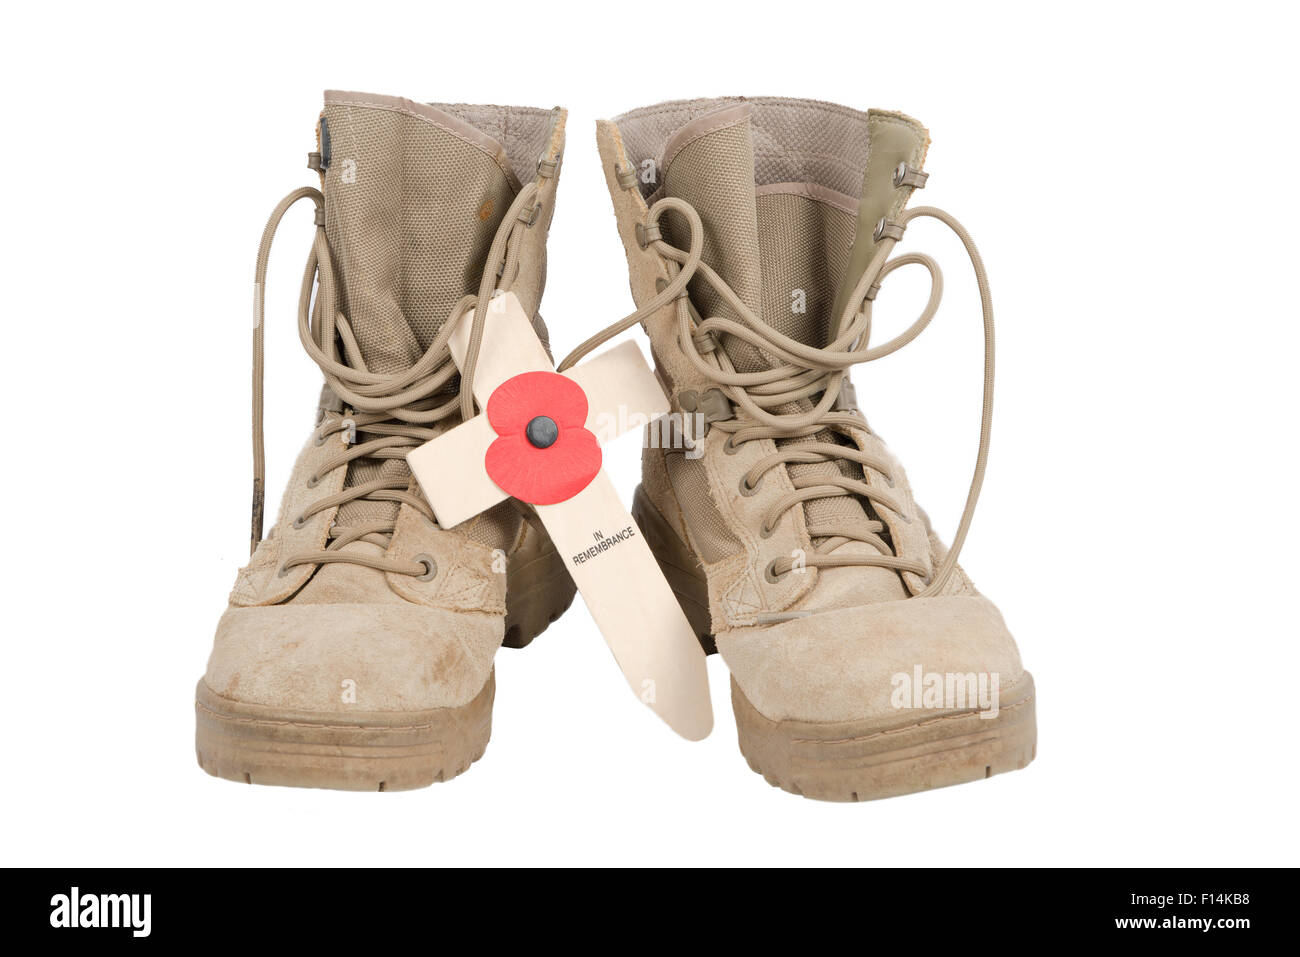 Pair of British desert combat boots on a white background with a cross and poppy placed between them - Stock Image